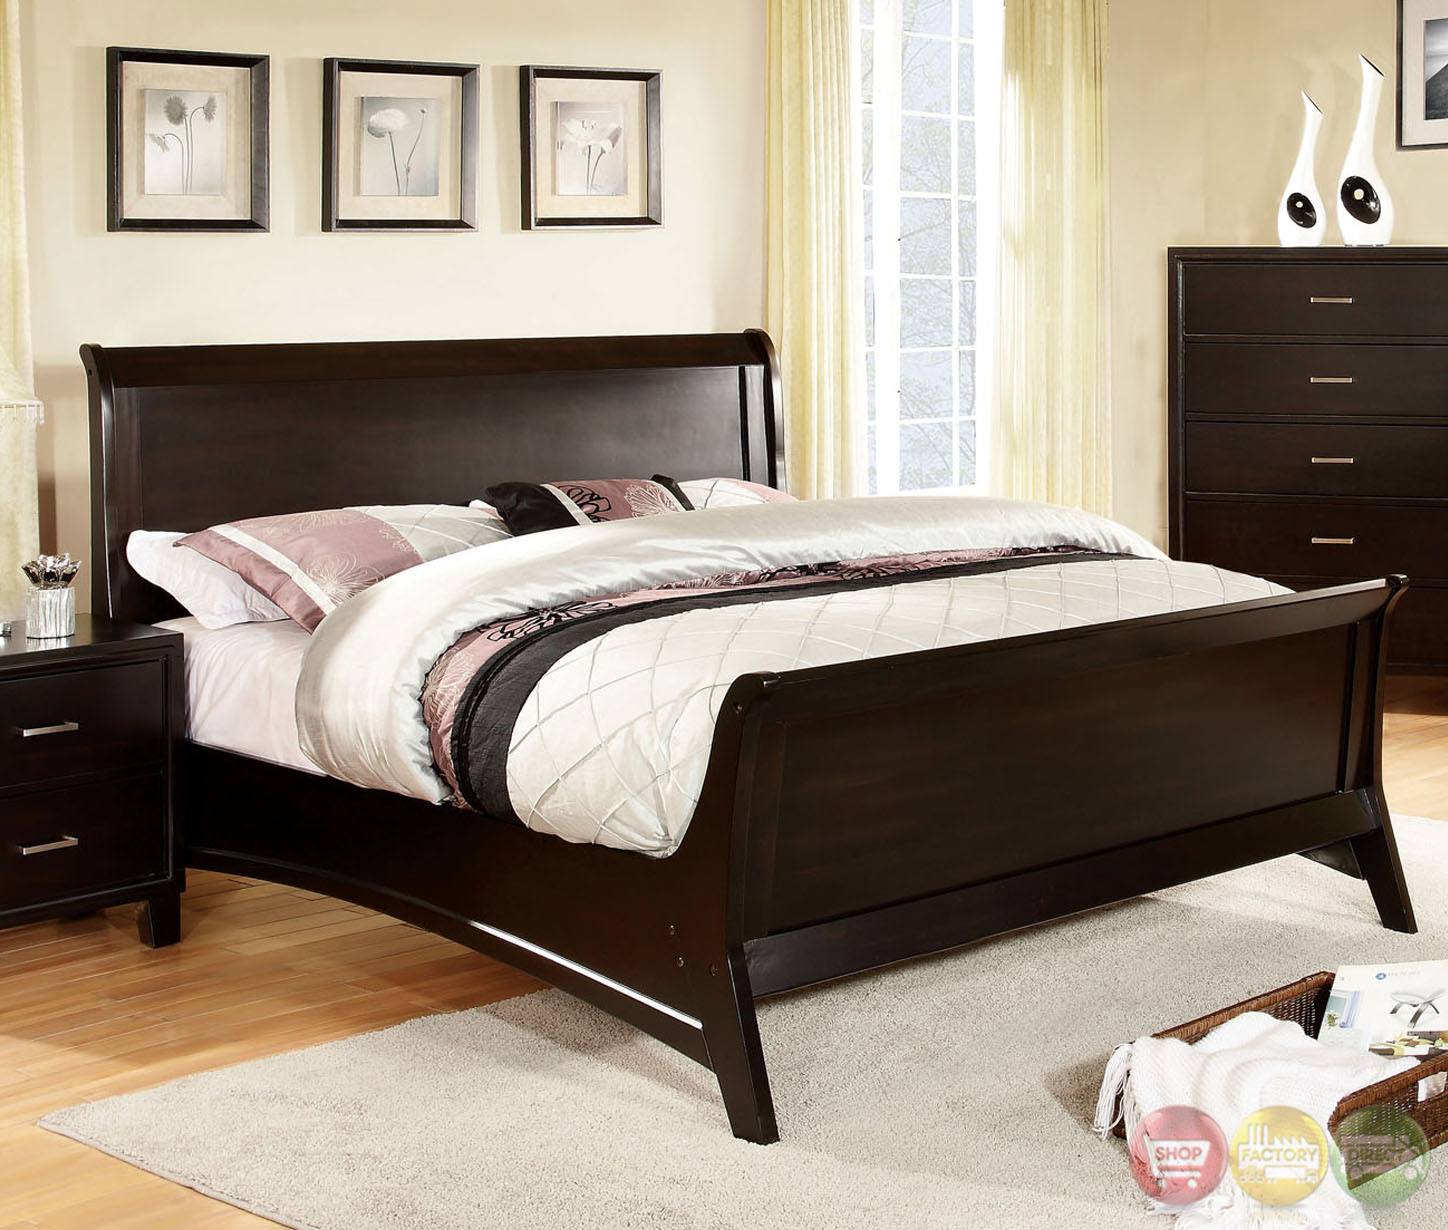 Darien Contemporary Espresso Sleigh Bedroom Set with Wooden Headboard CM7818